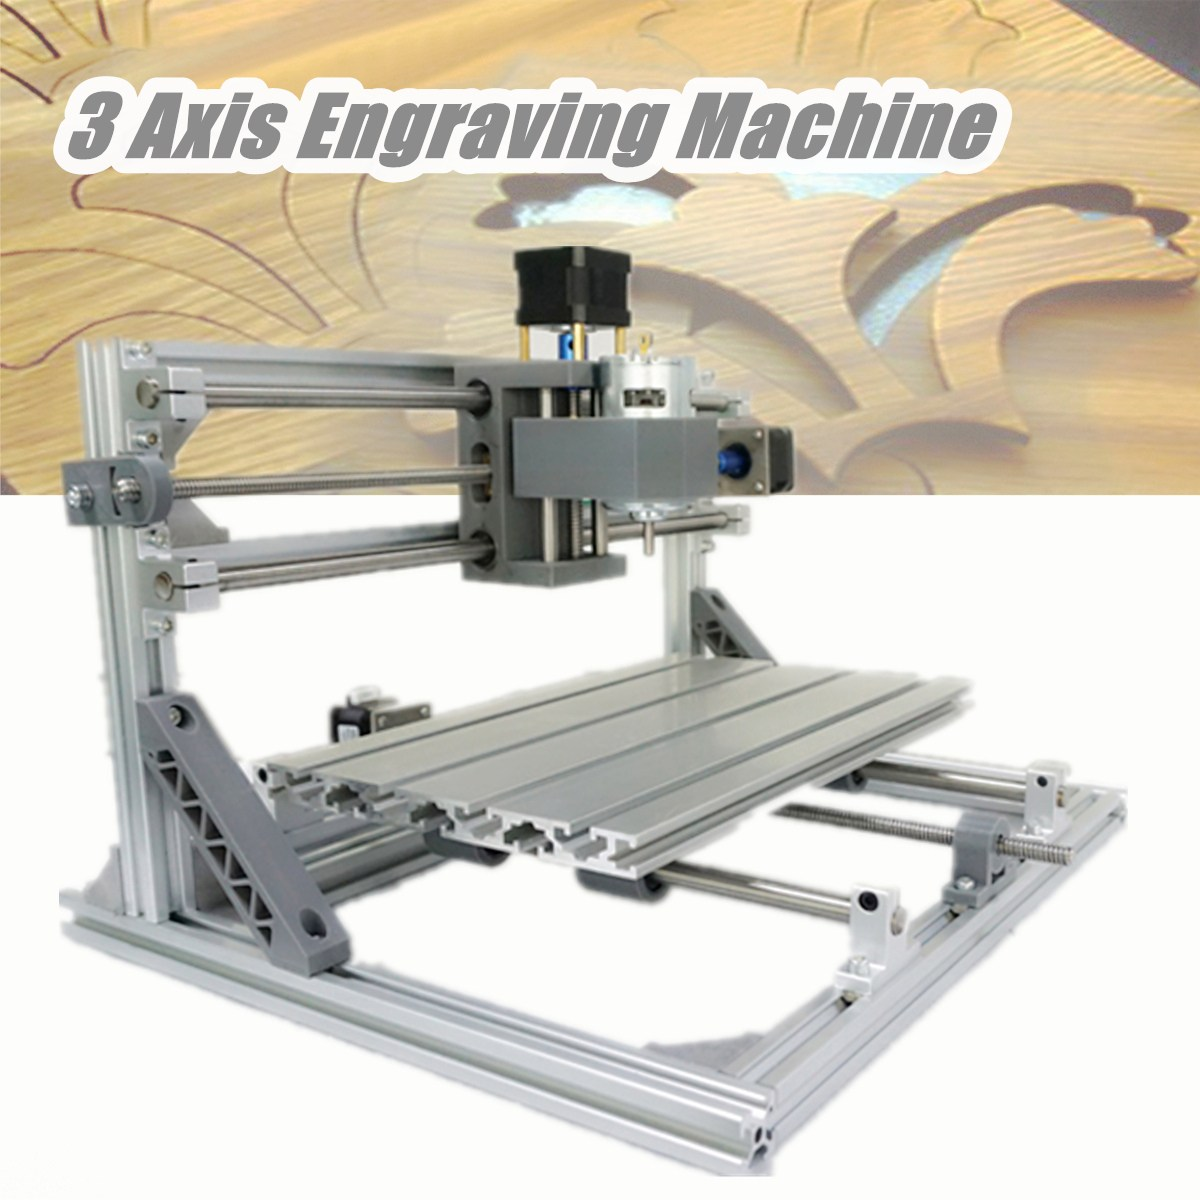 DIY Mini CNC Router Laser Machine 3 Axis 3018 ER11 GRBL Control Pcb Pvc Milling Wood Router Wood Router Laser Engraving 2020 wood router pcb milling machine arduino cnc diy wood carving laser engraving machine pvc engraver grbl cnc router fit er11